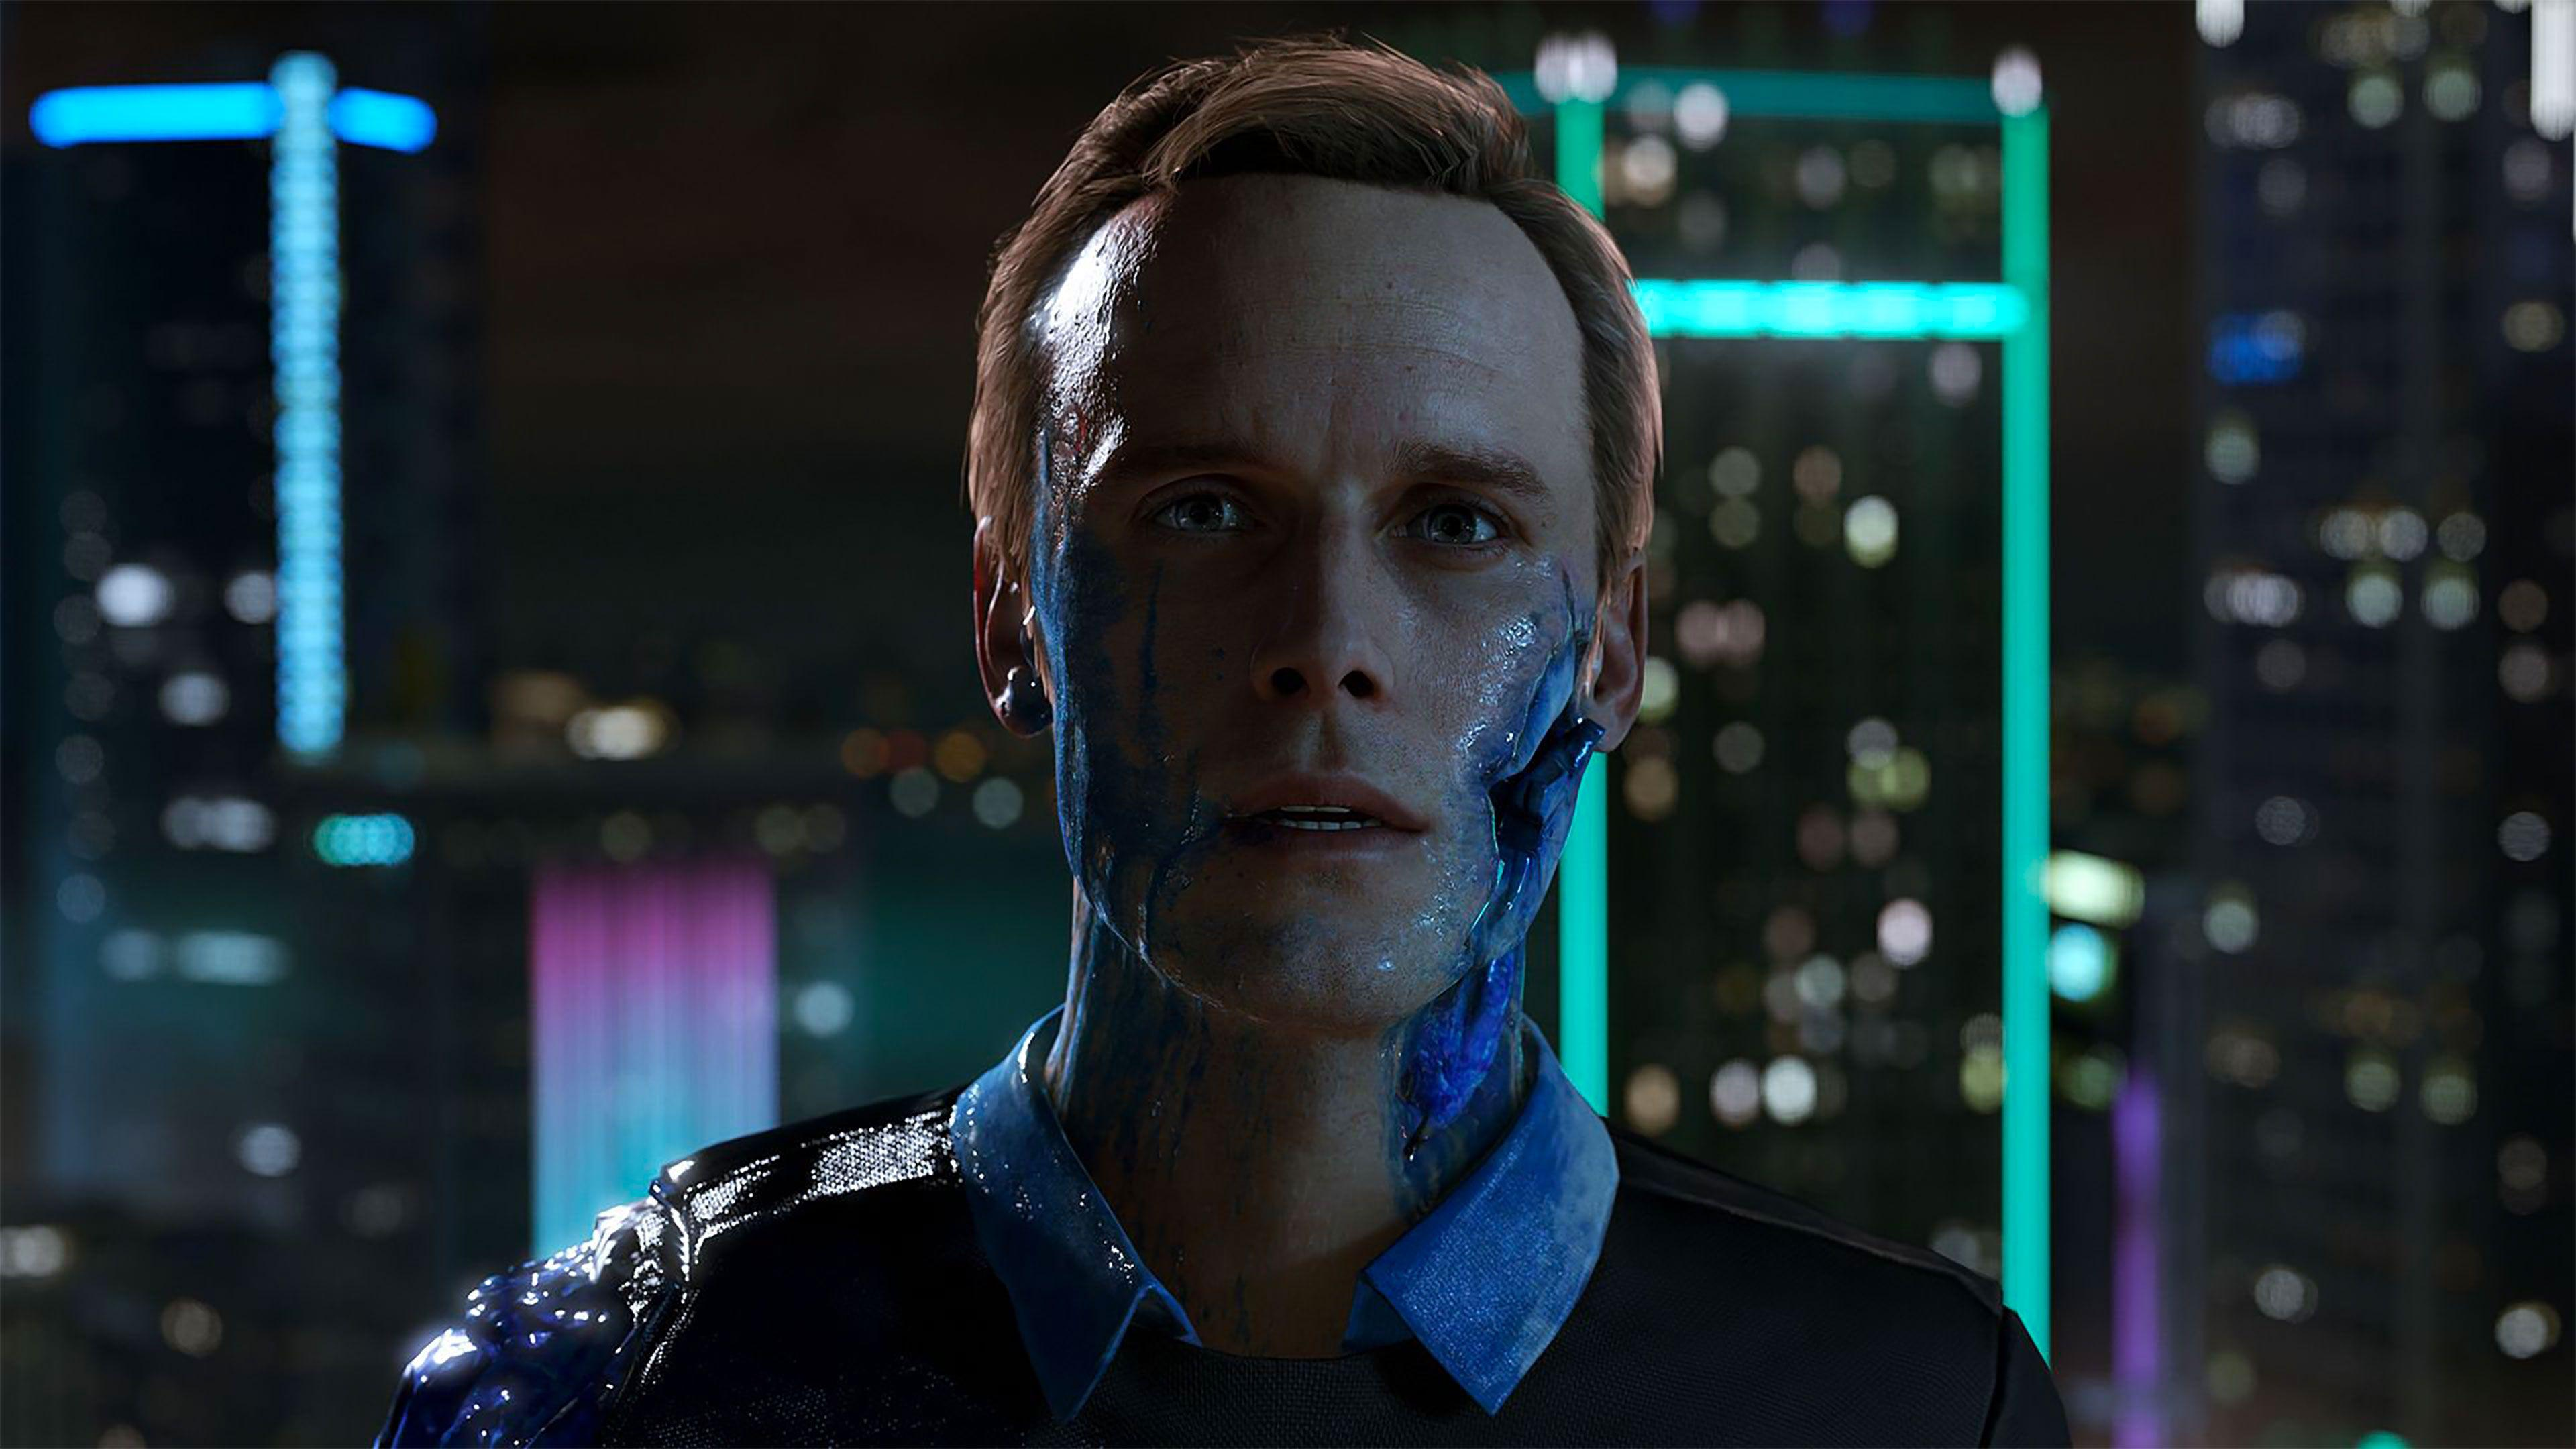 Detroit: Become Human Wallpapers in Ultra HD